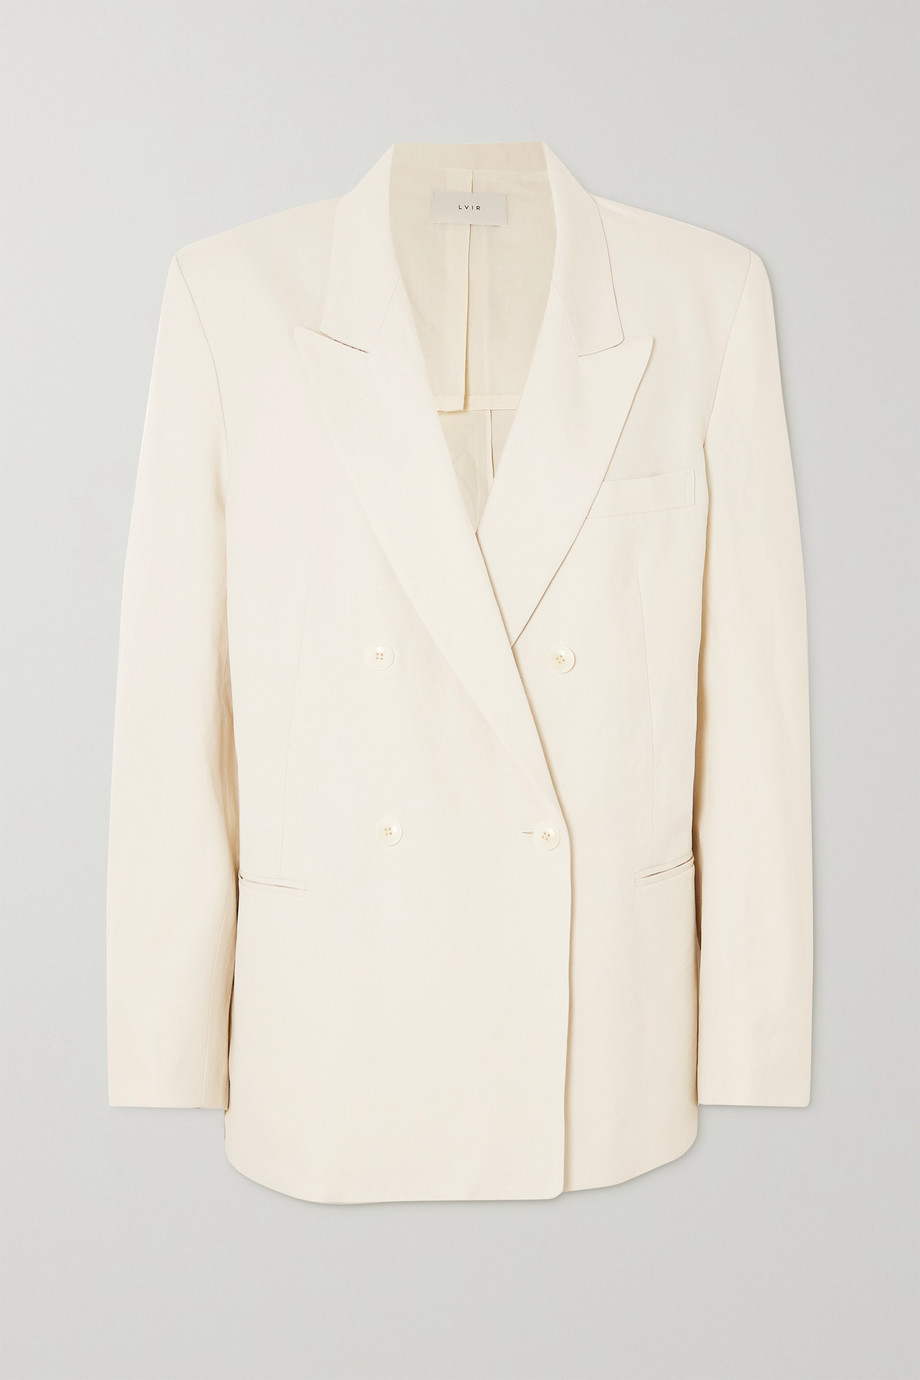 LVIR Double-breasted cotton and linen-blend blazer